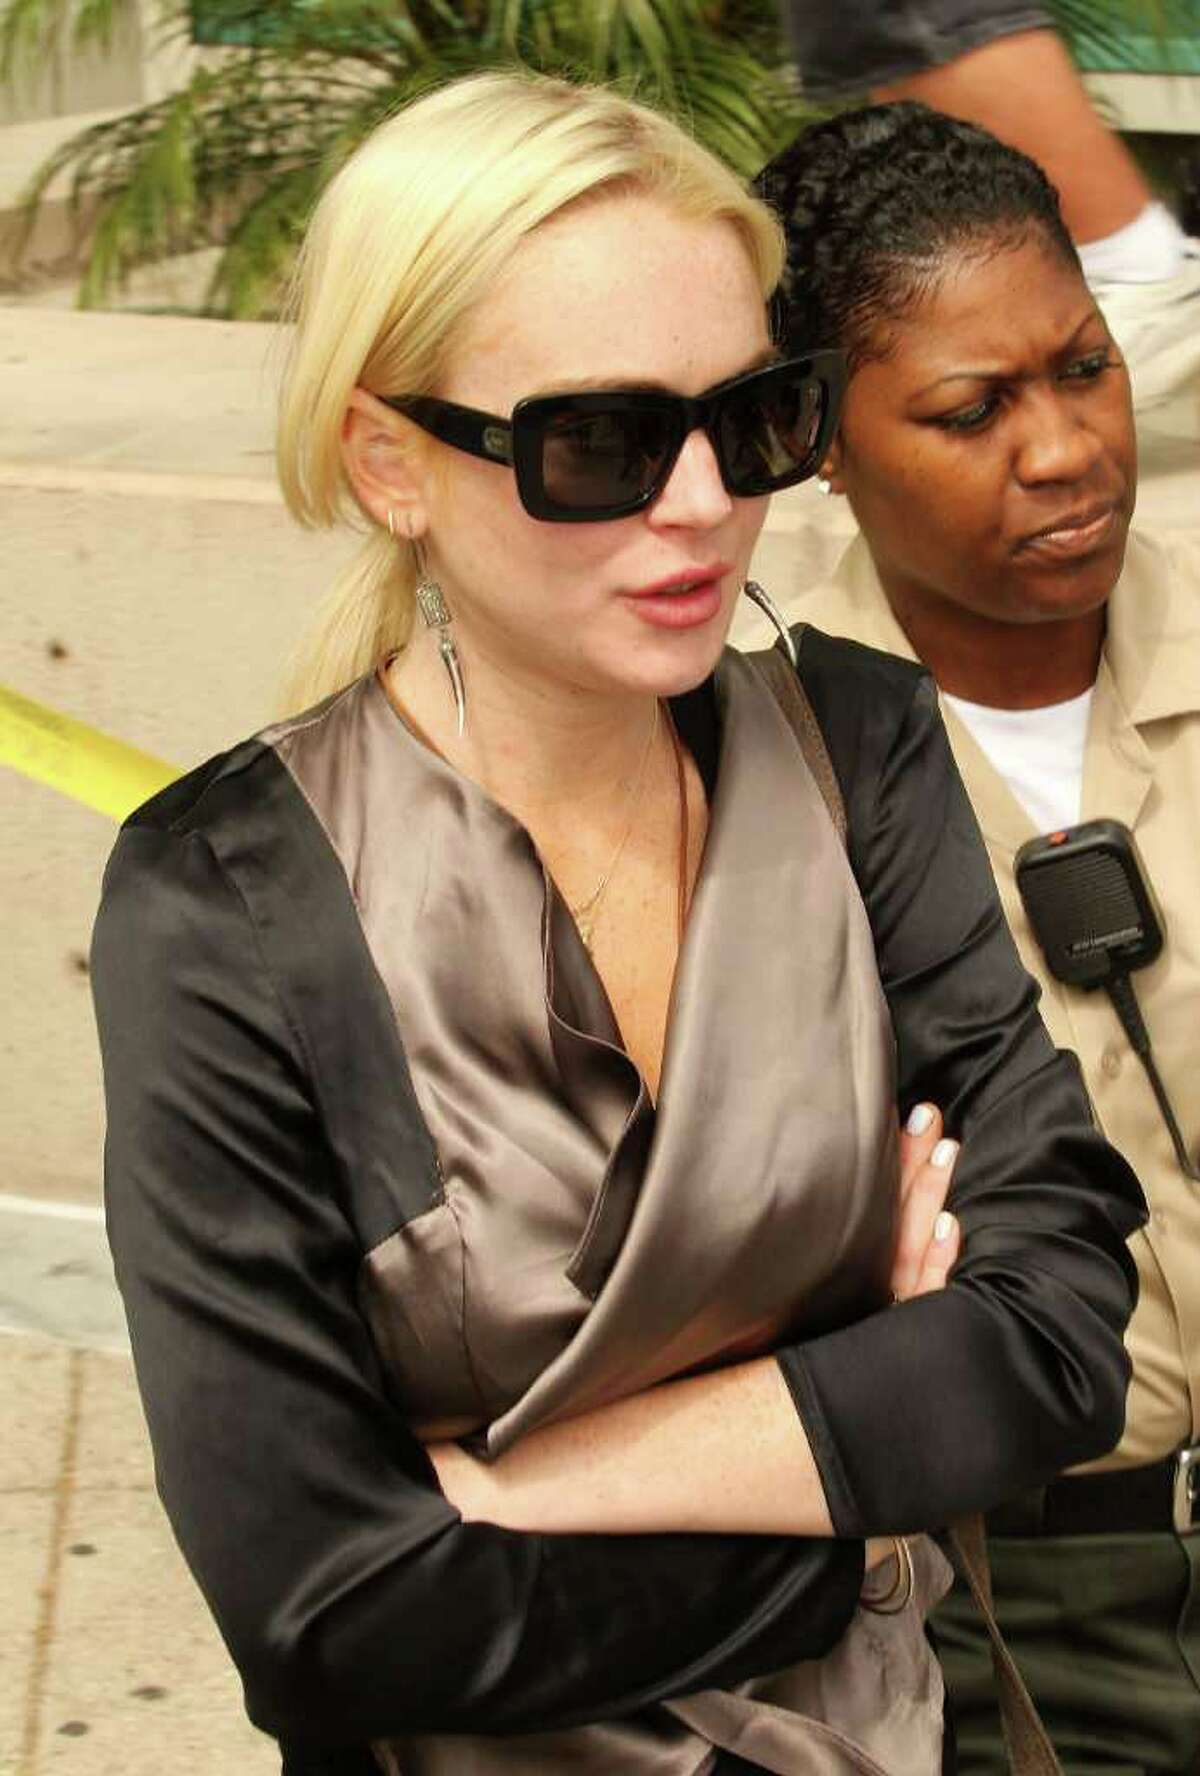 Actress Lindsay Lohan leaves the Airport Branch Courthouse for her progress report hearing in Los Angeles, California. Judge Stephanie Sautner did not find Lohan in violation of her probation but indicated that Lohan should speed up her community service if she is to complete the 480 hours within a year as required by the court. Lohan is on probation after she pleaded no contest to a misdemeanor count of theft involving a necklace taken from a jewelry store in Venice, California.